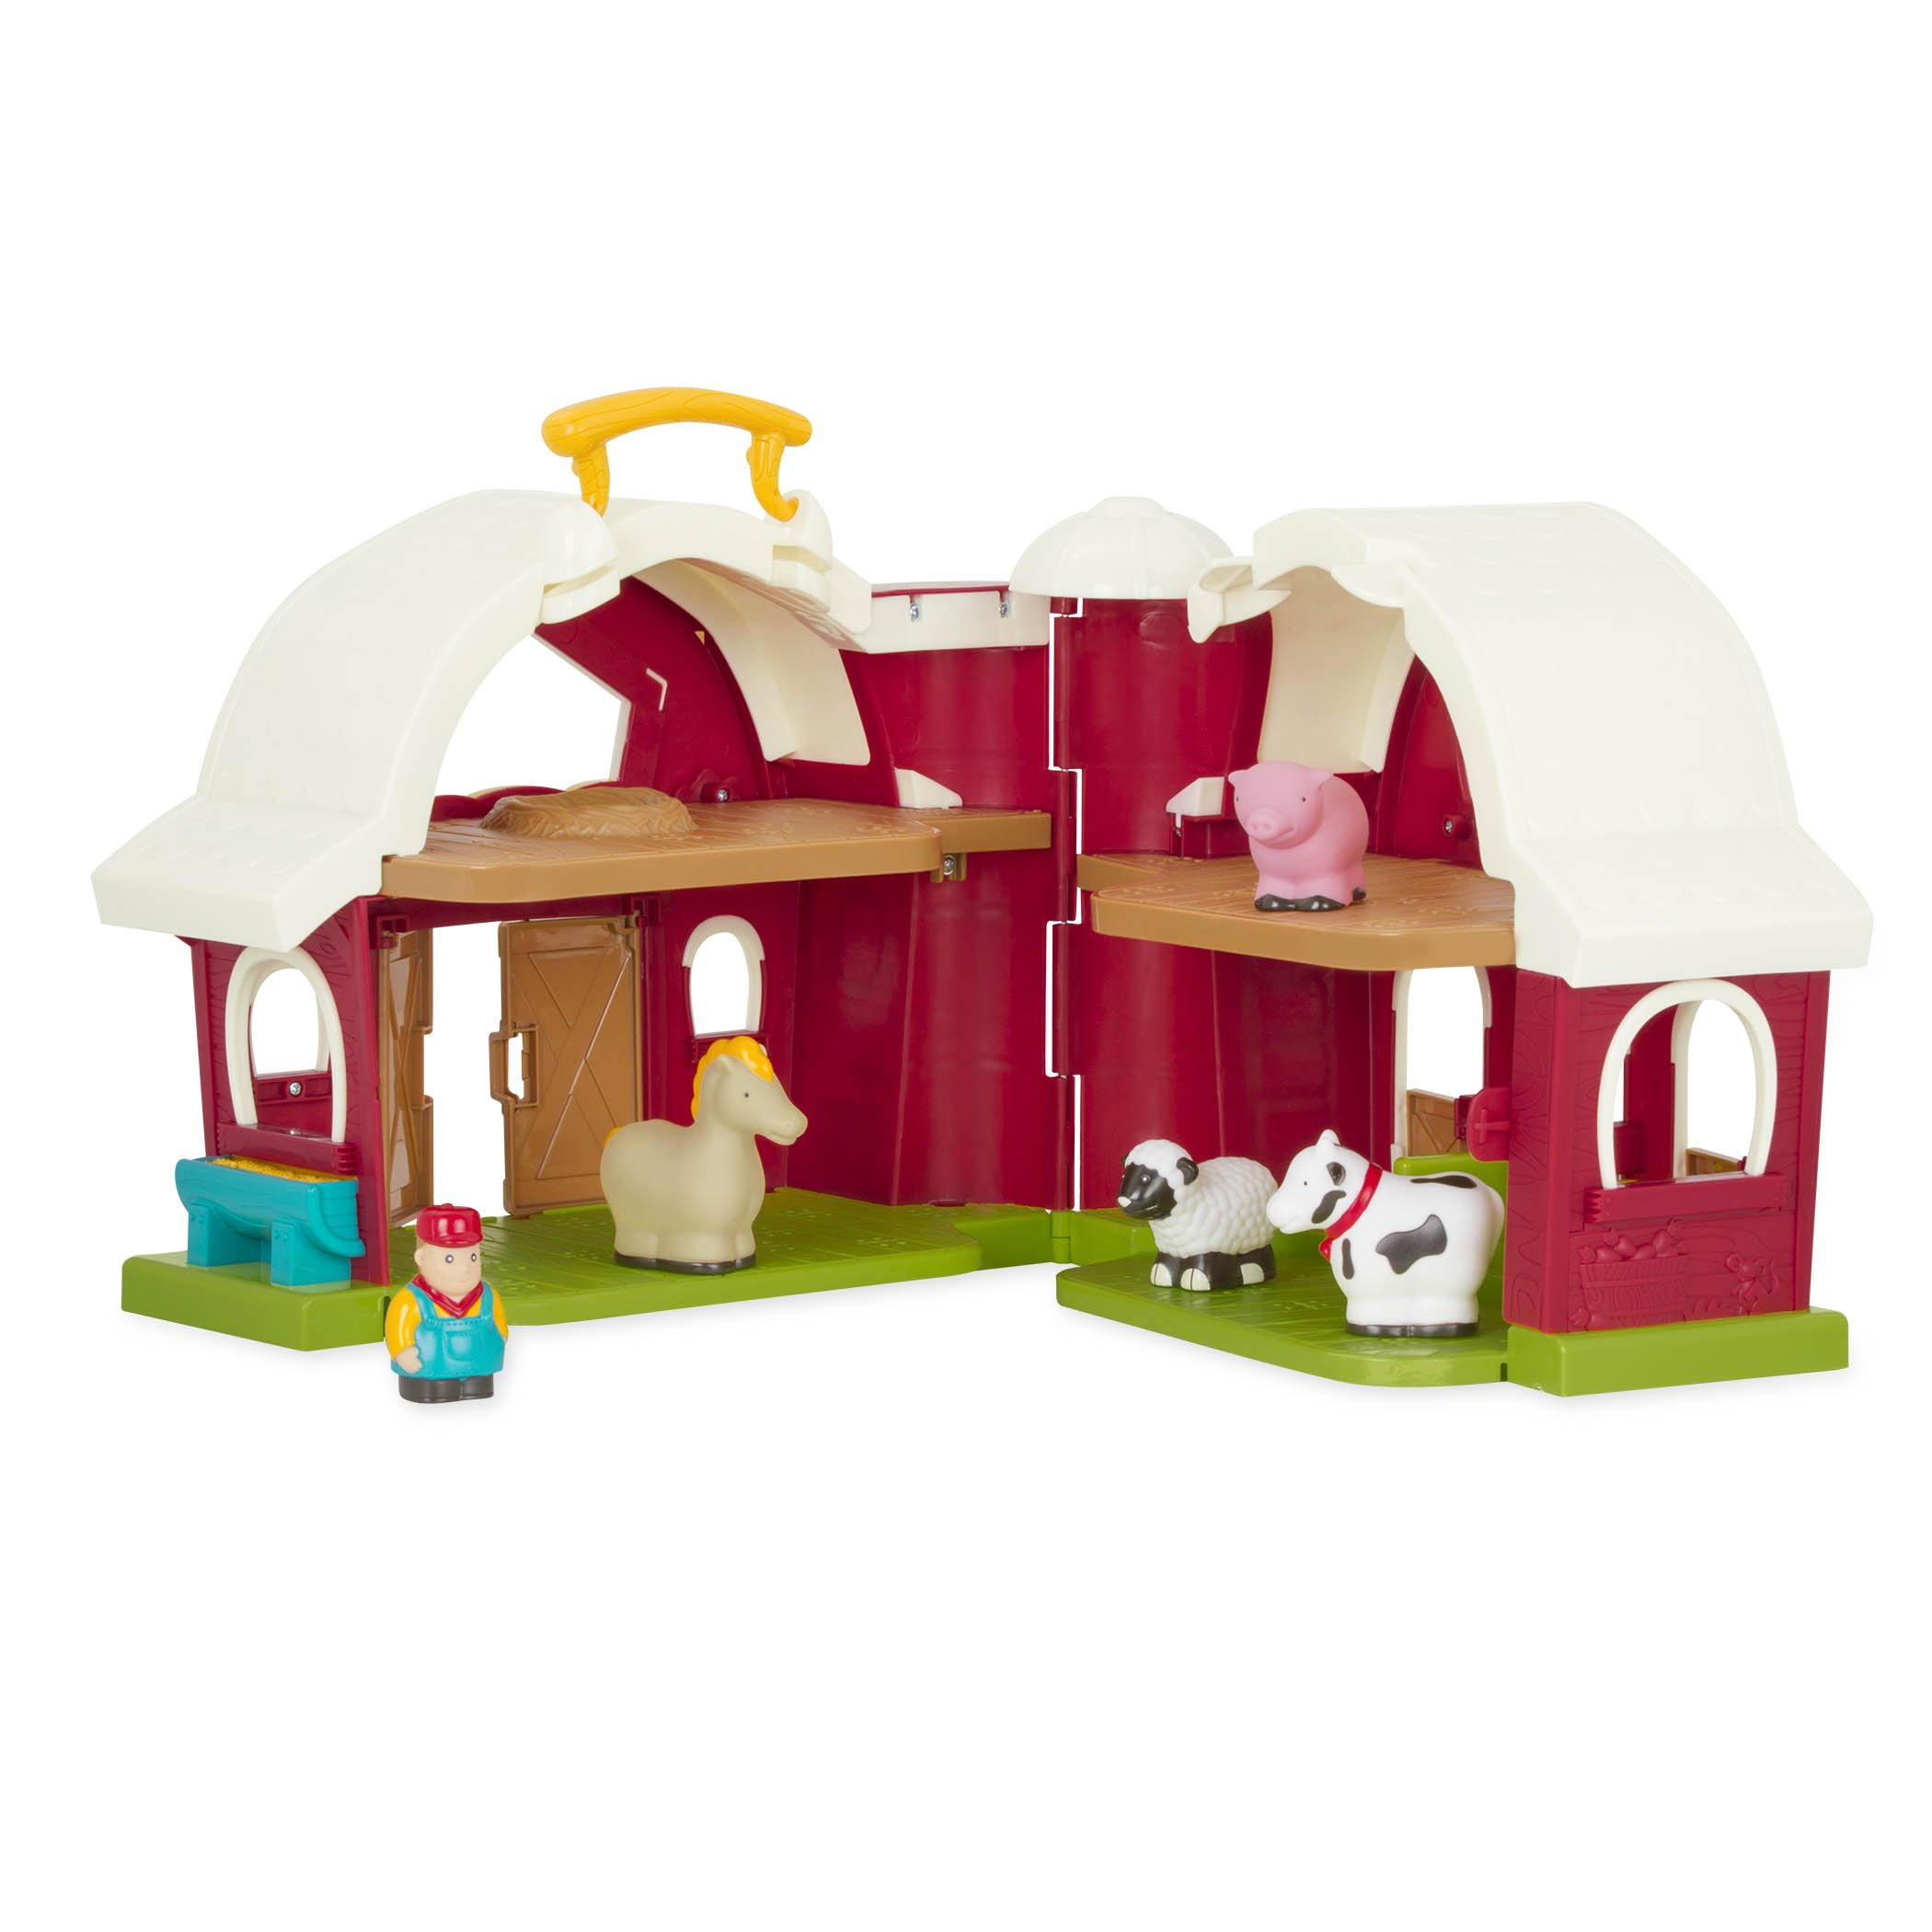 Battat - Big Red Barn - Animal Farm Playset for Toddlers ...